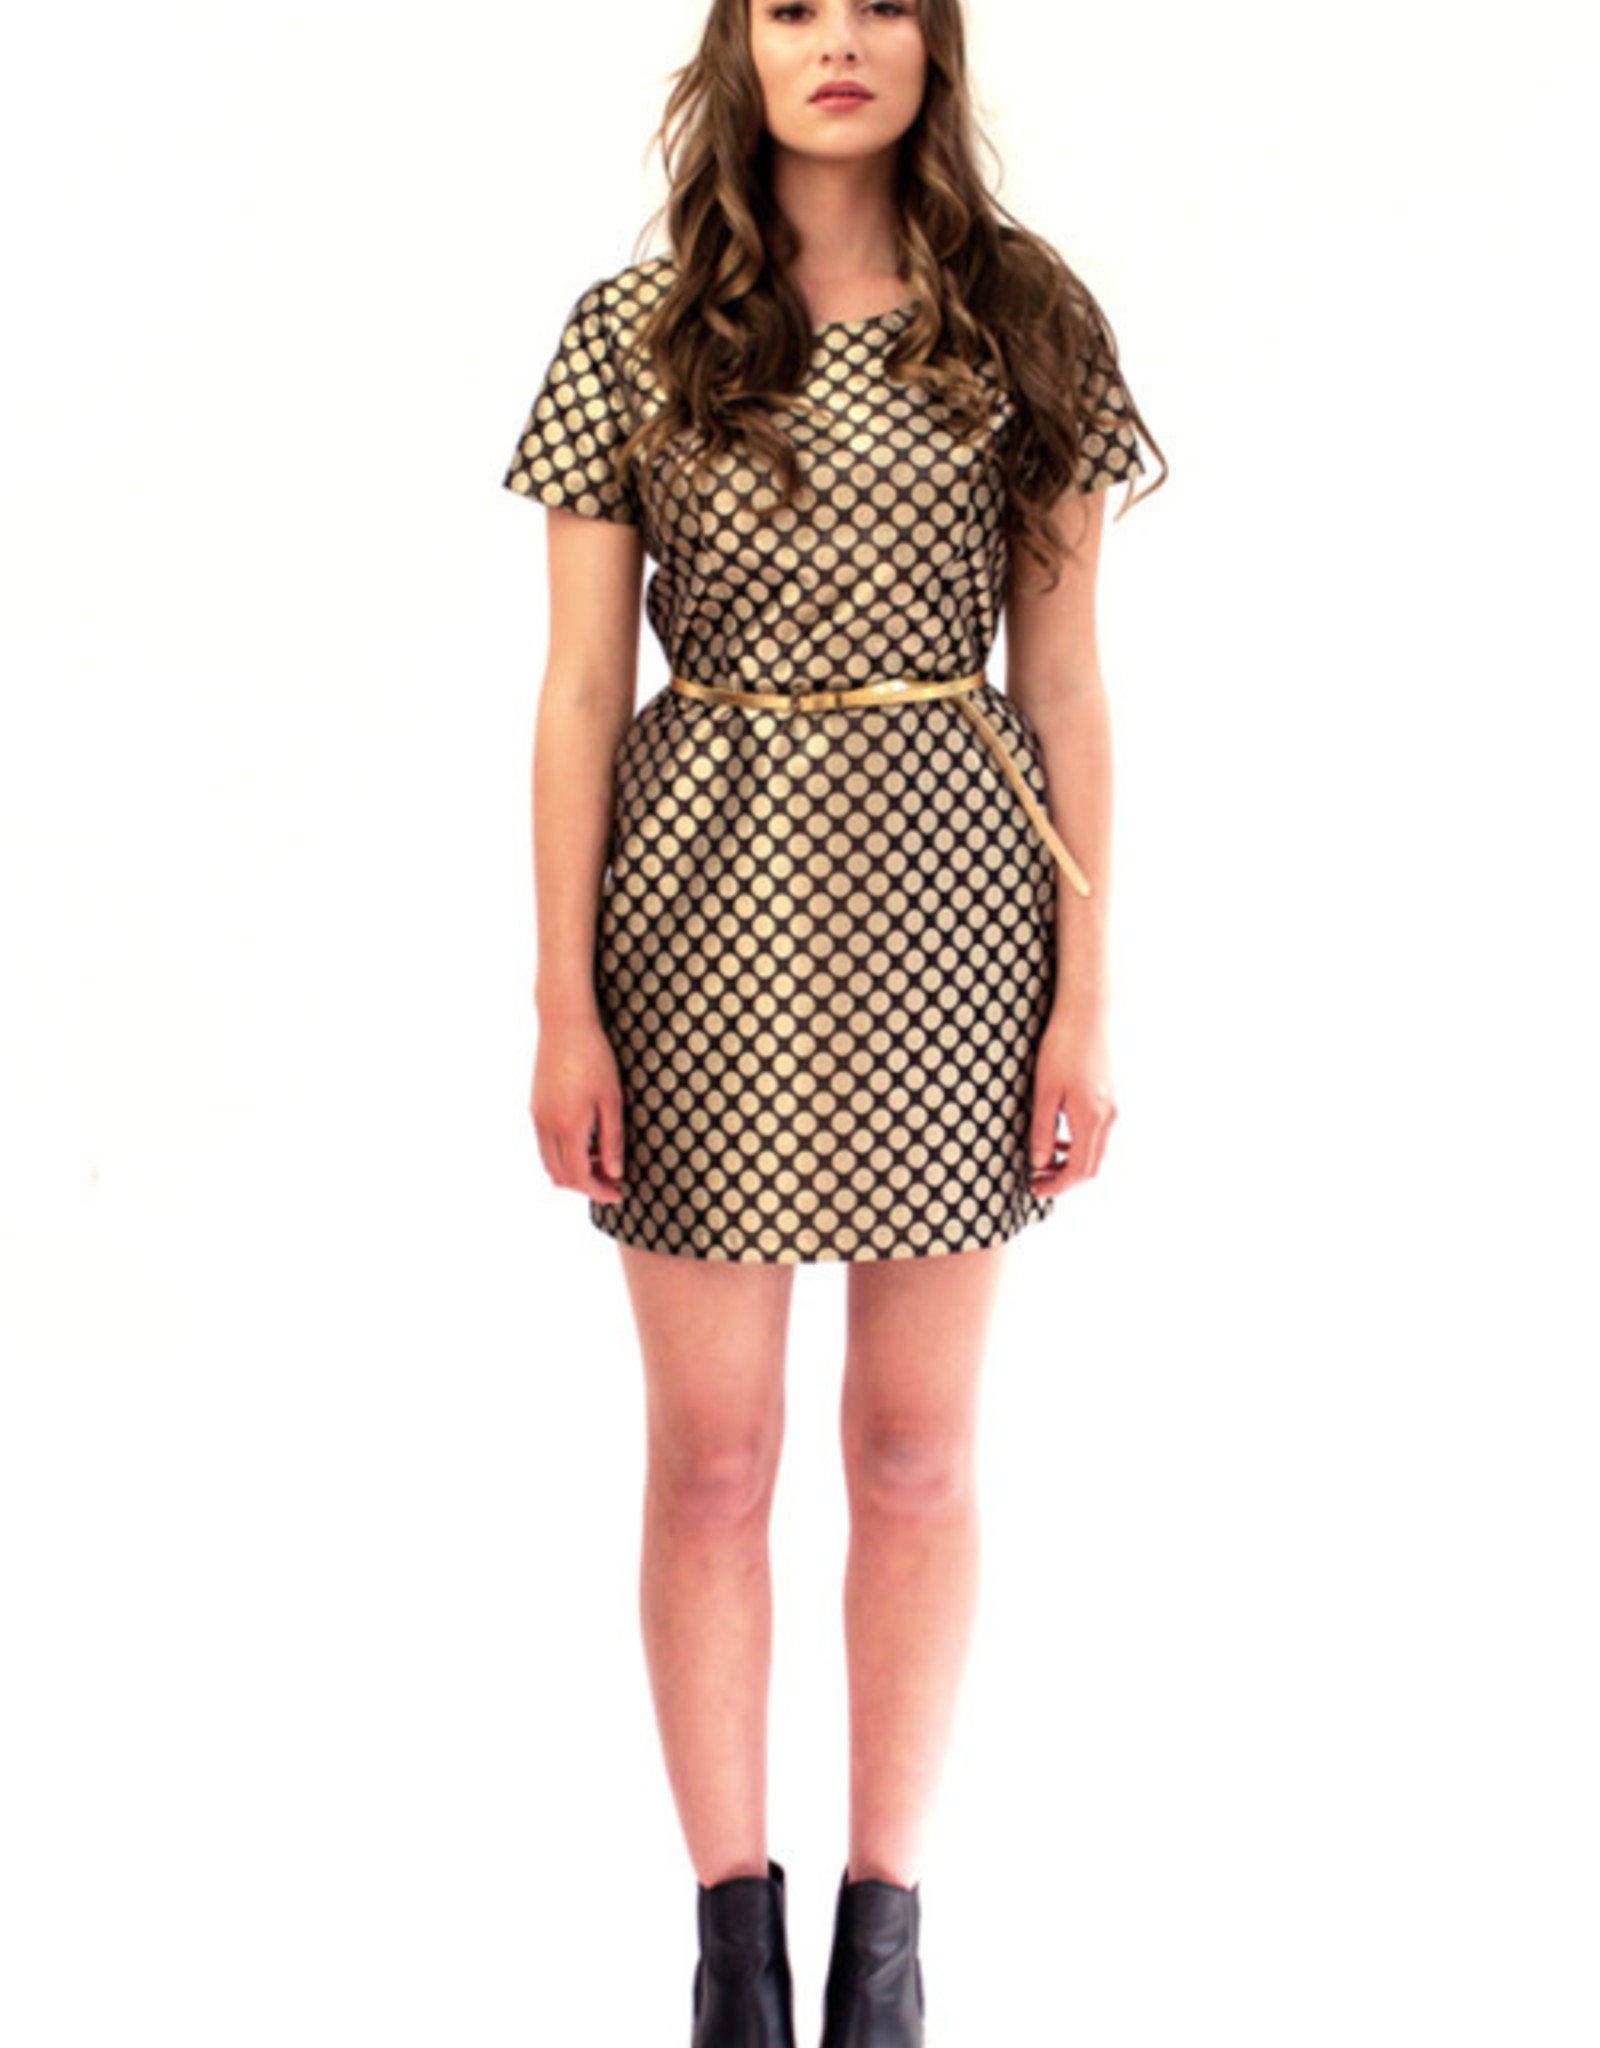 Papercut Papercut Patterns -Sigma Dress - xxs-xl